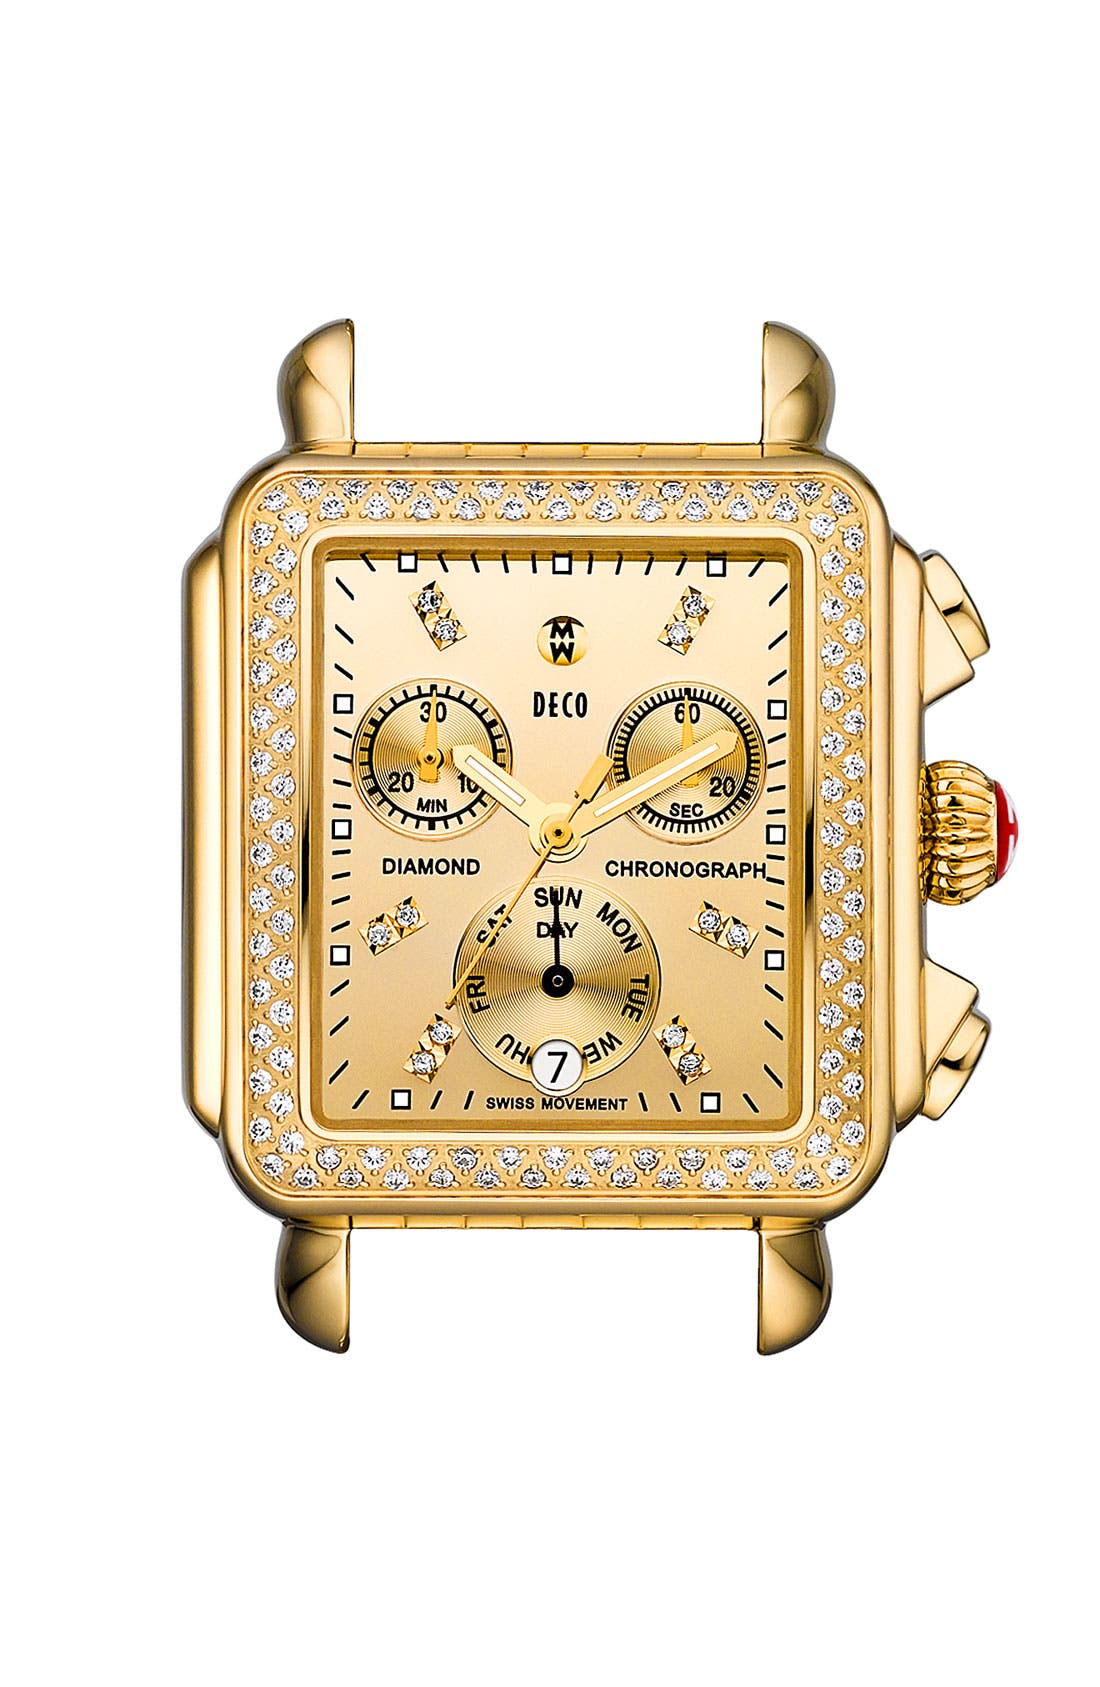 Alternate Image 1 Selected - MICHELE 'Deco Diamond' Diamond Dial High Shine Gold Watch Case